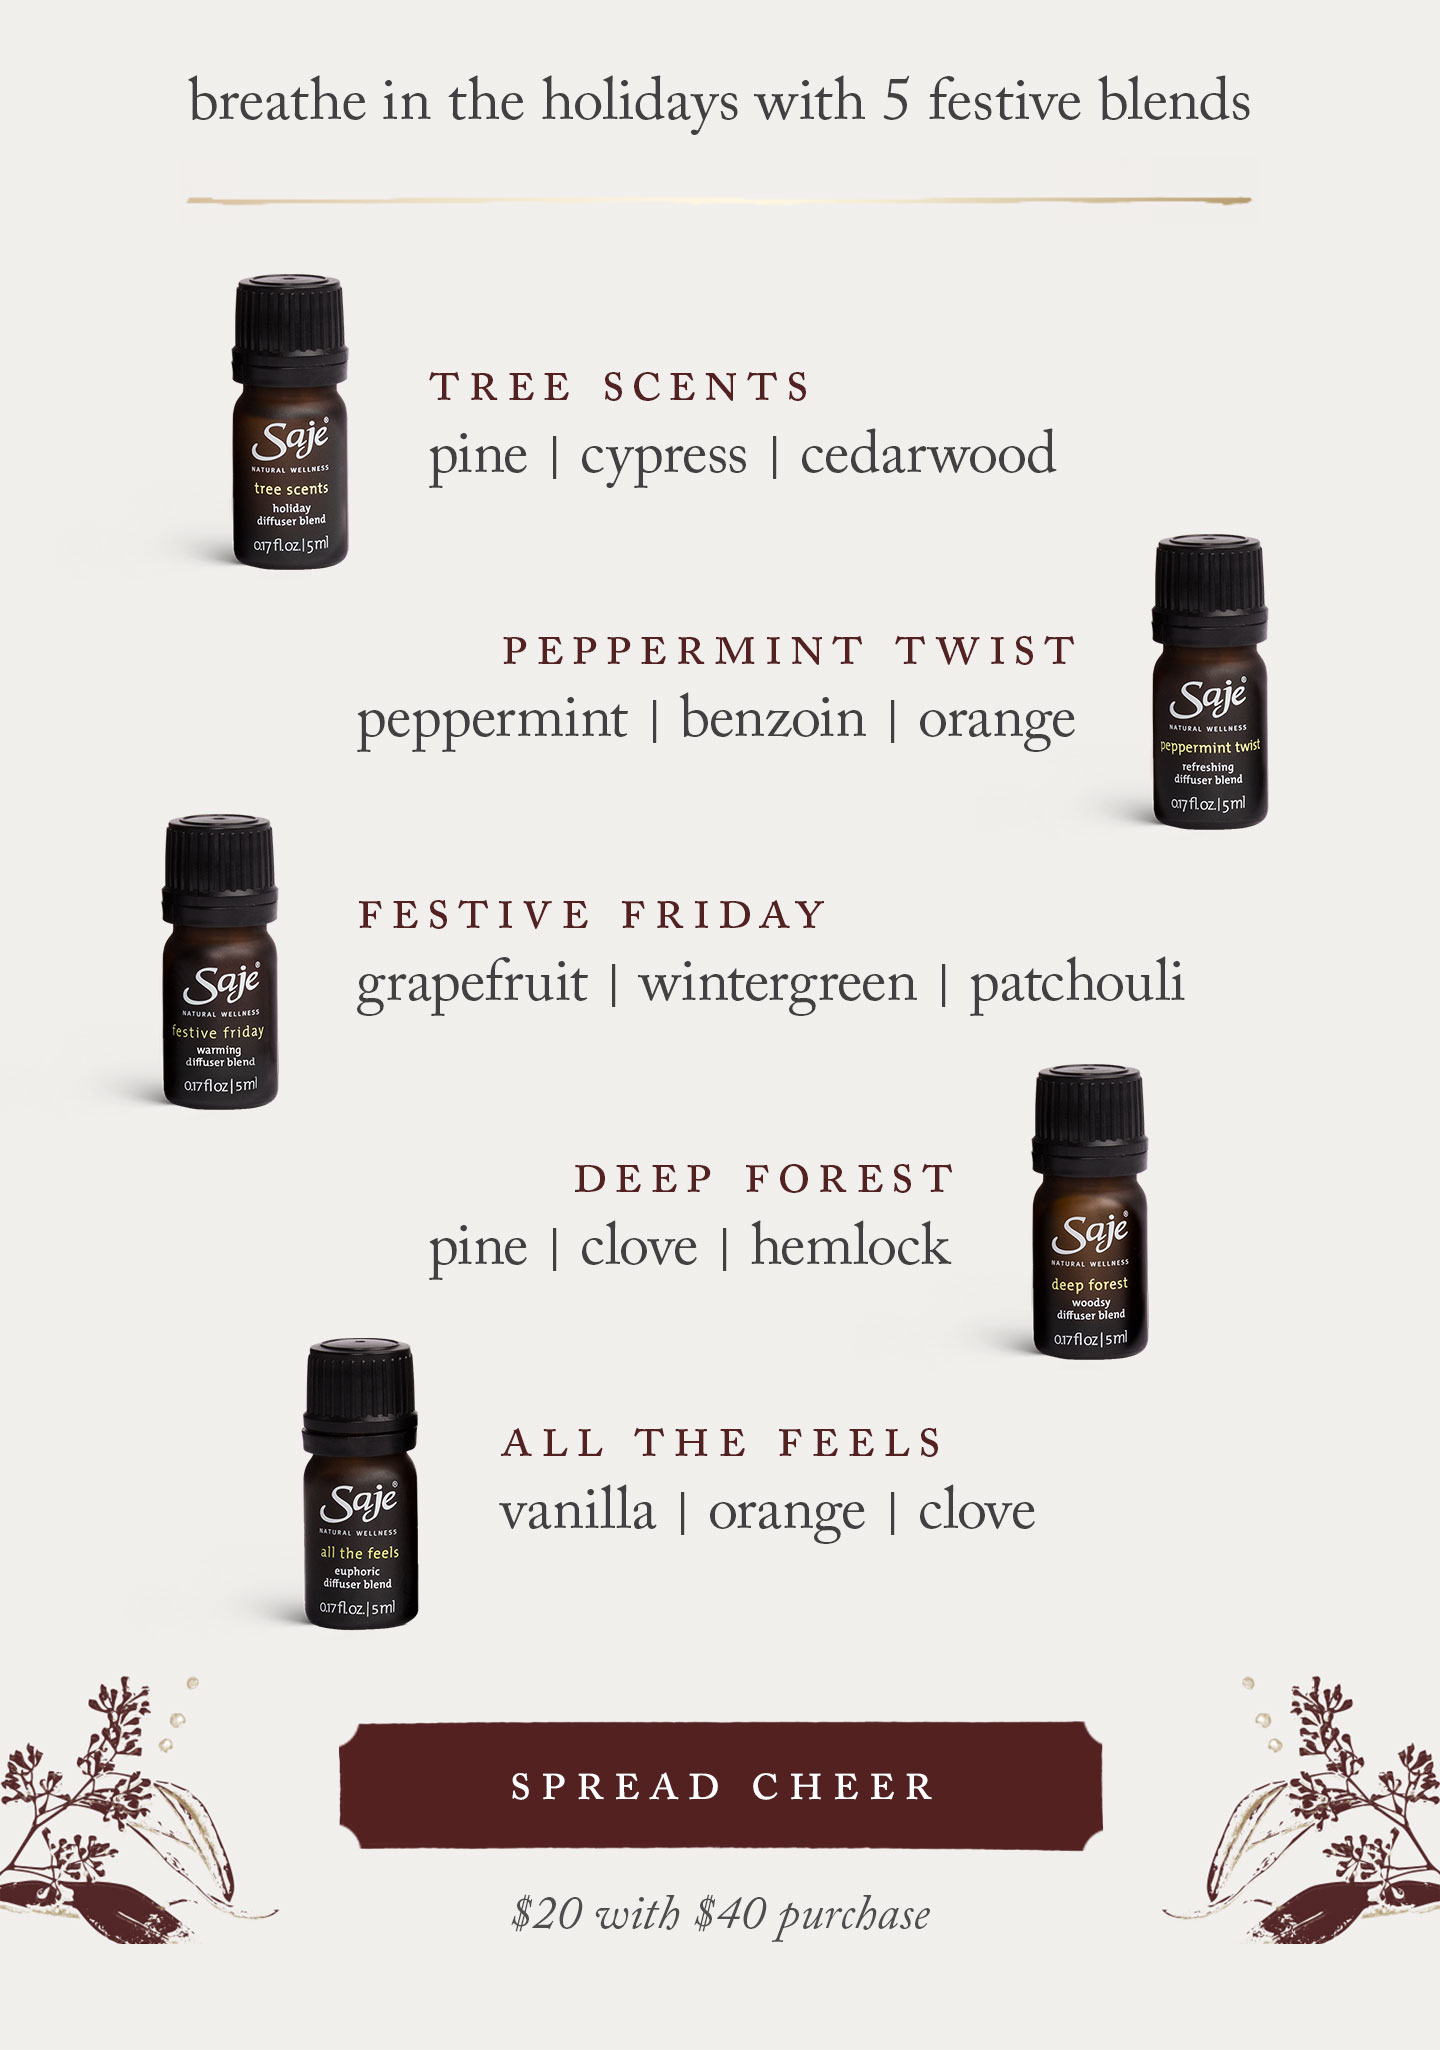 Good Cheer - diffuser blend collection